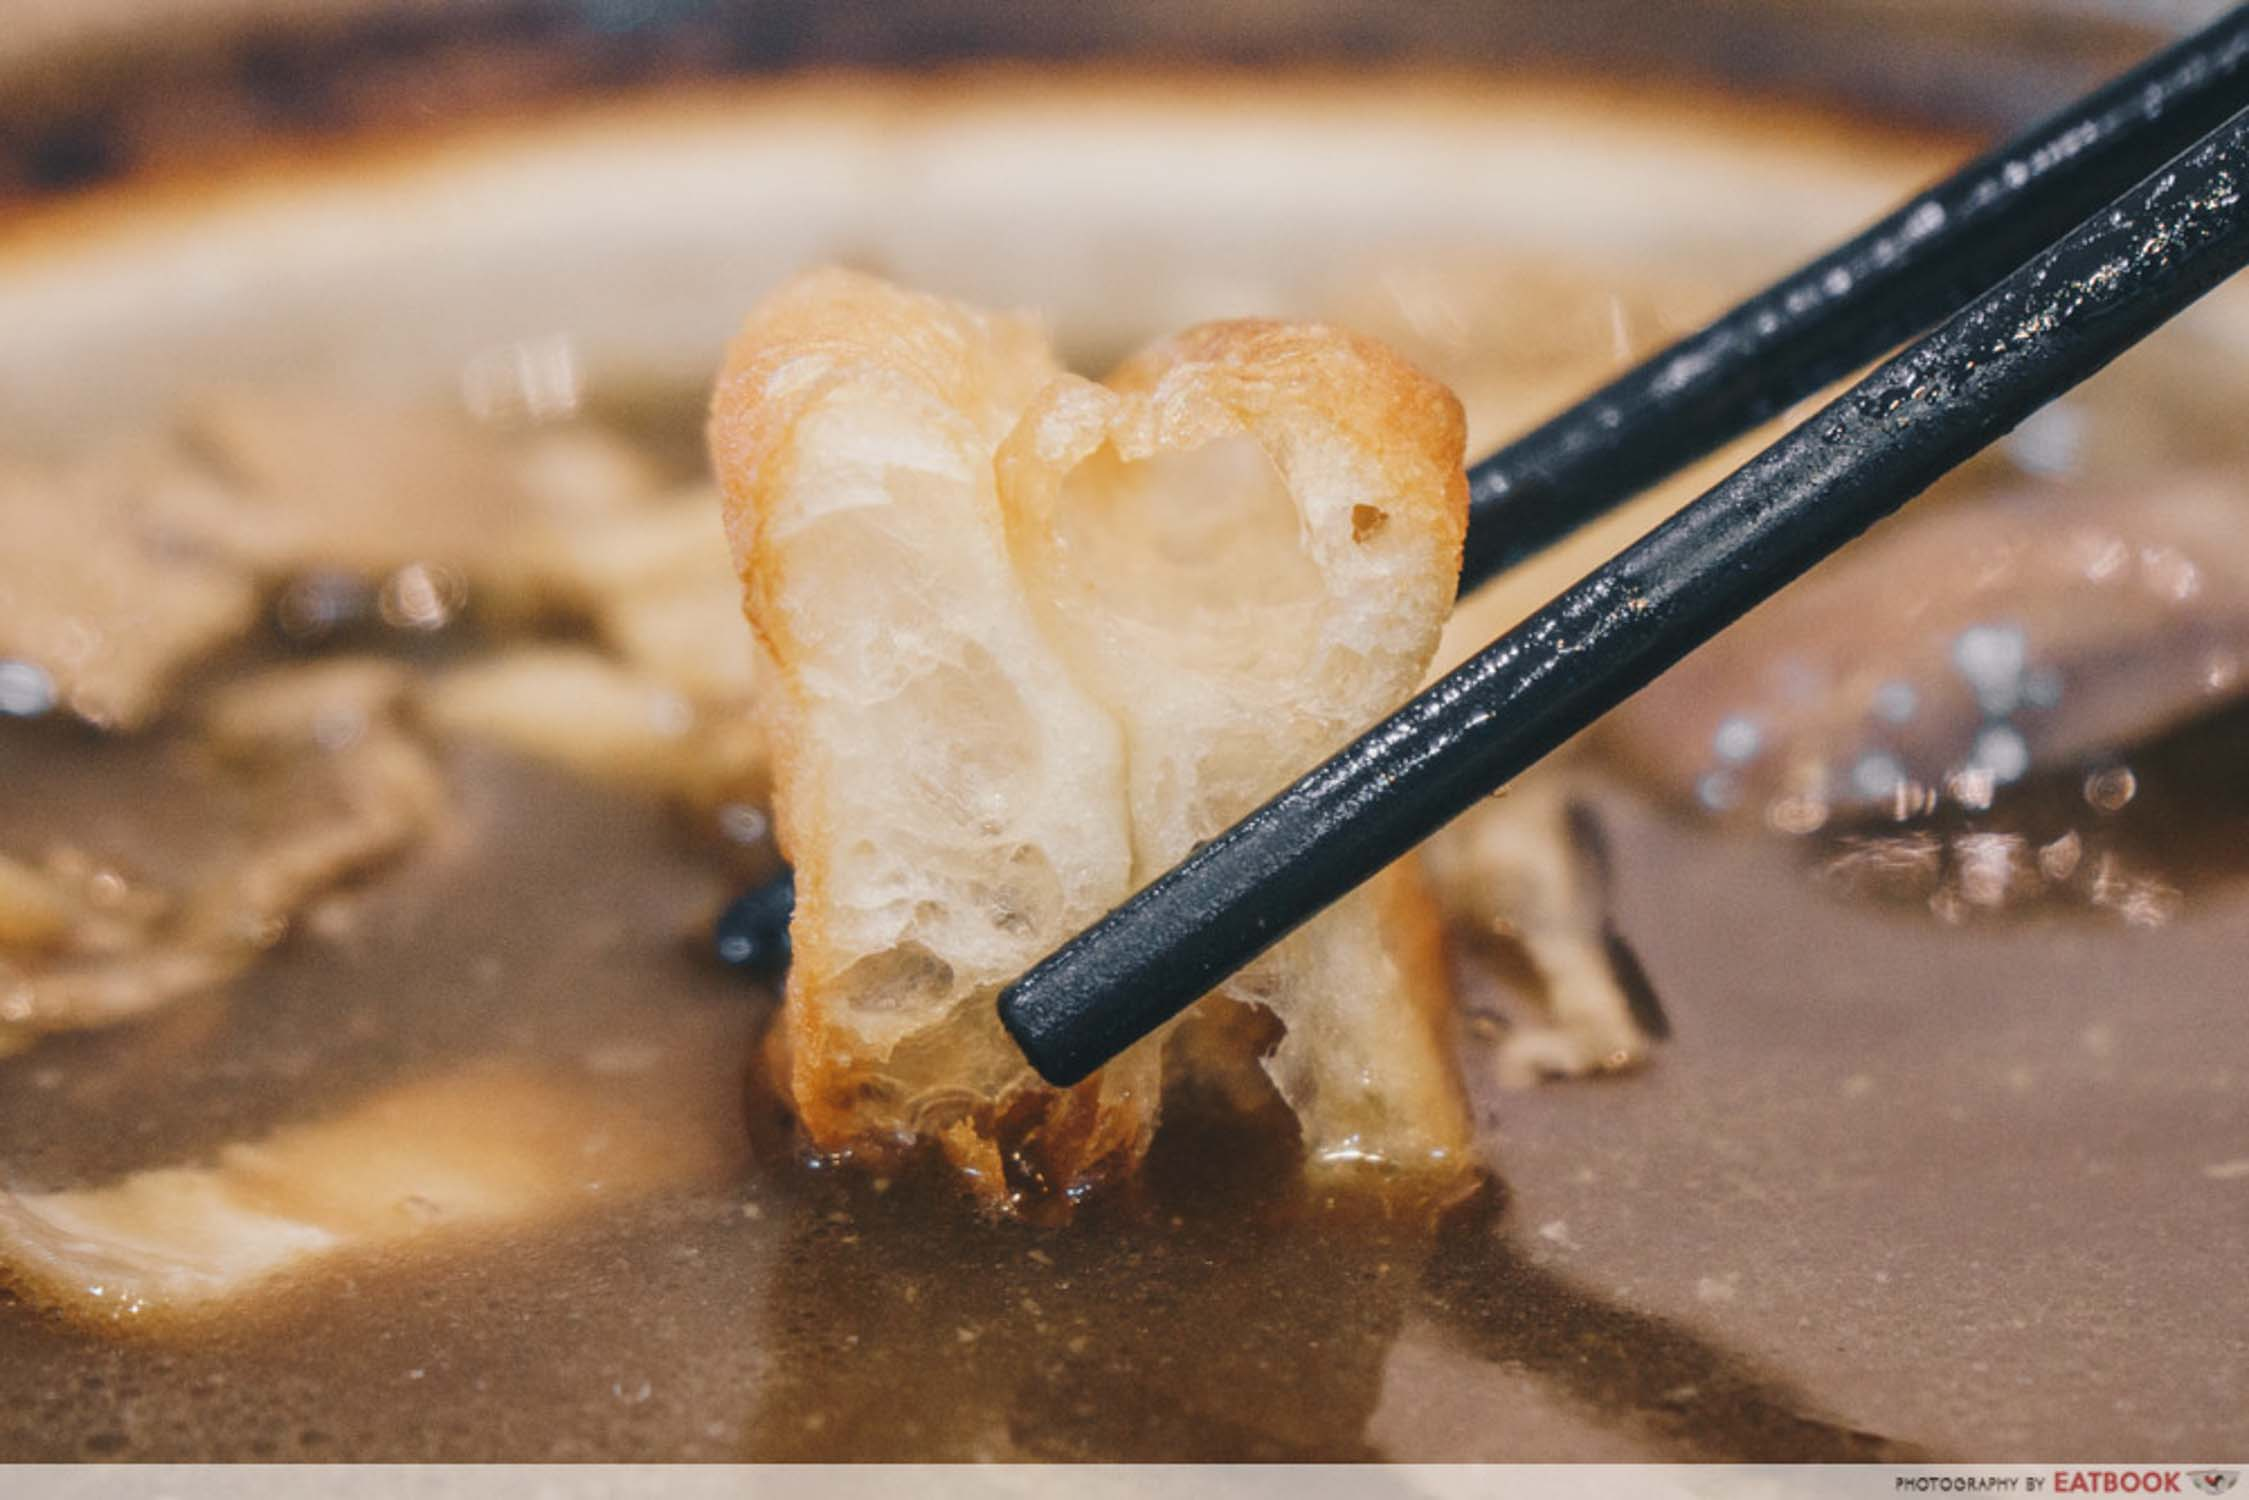 Good Taste Bak Kut Teh - You Tiao Closeup